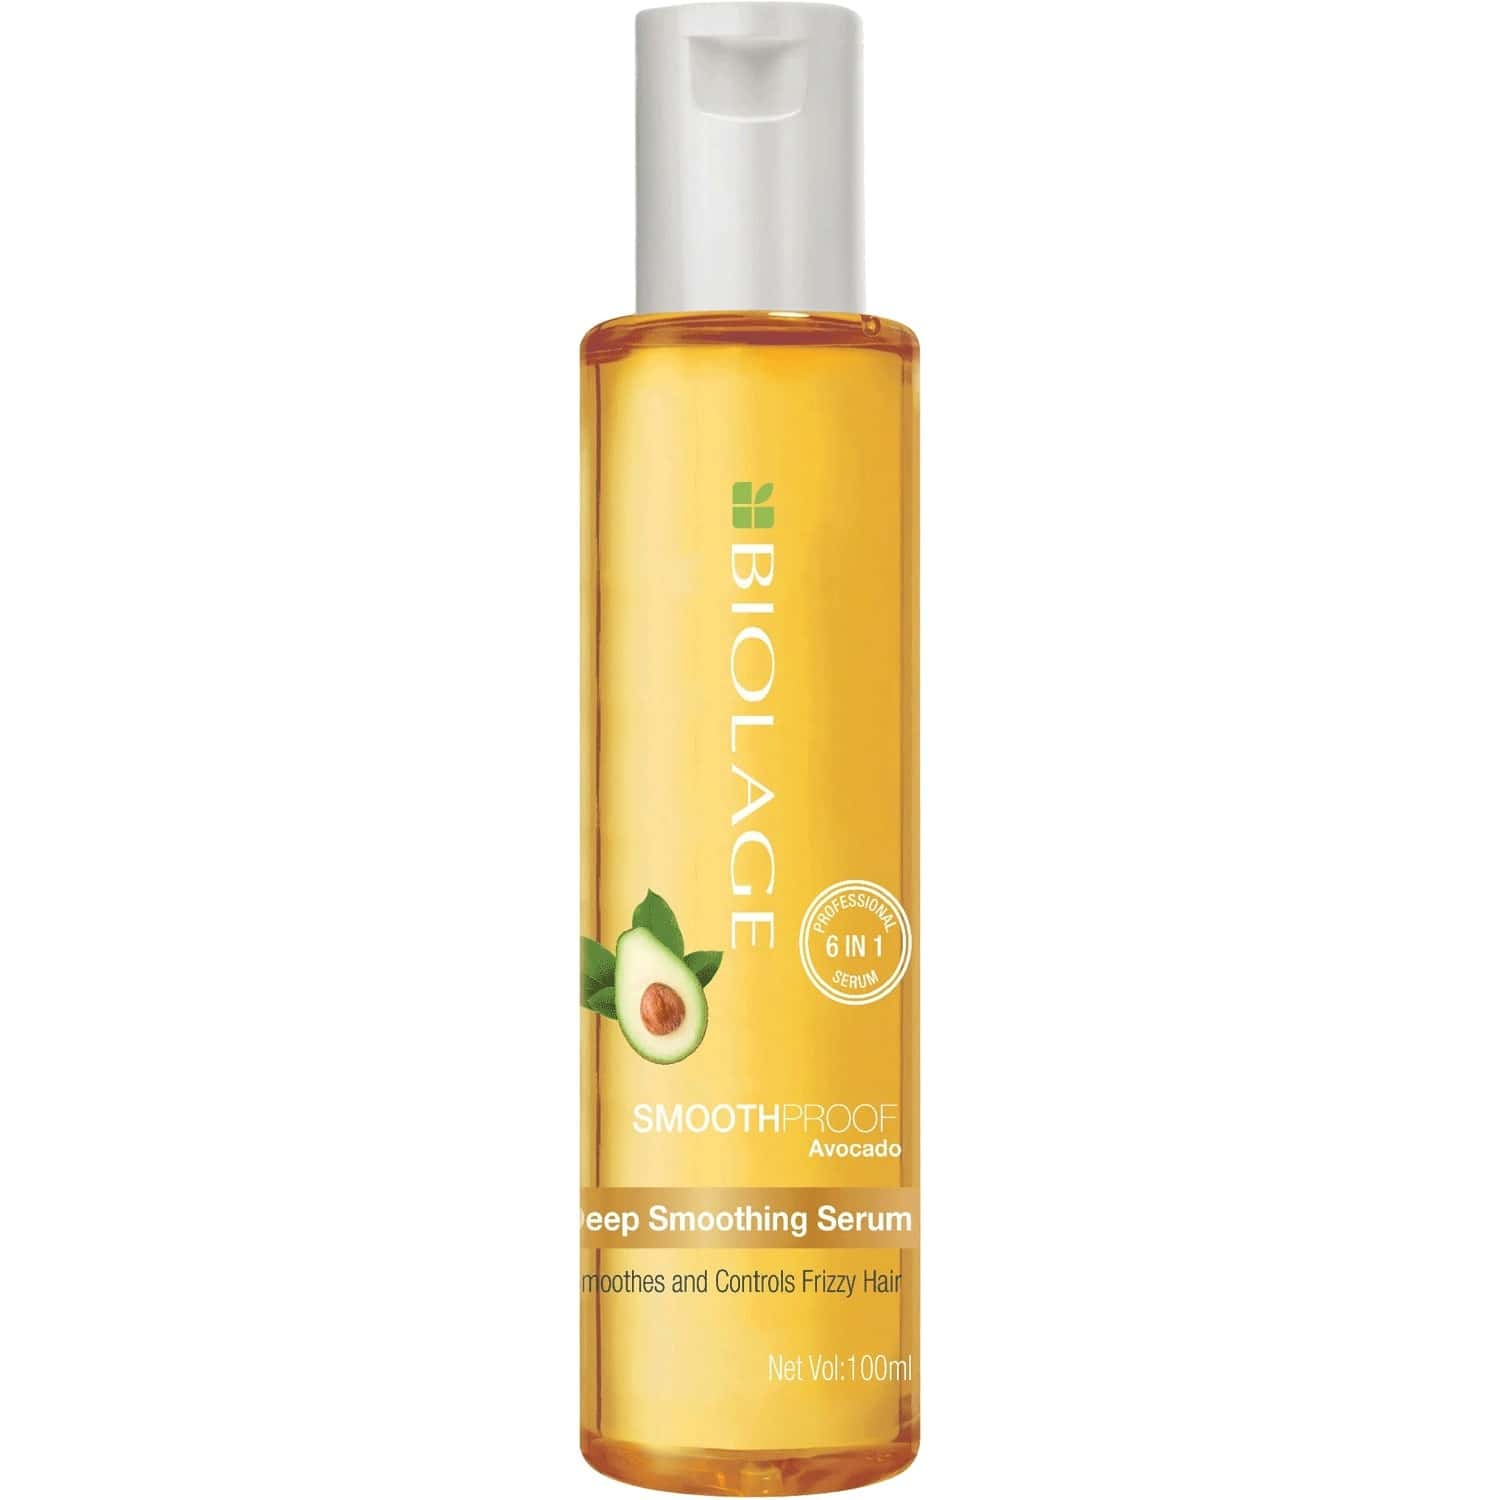 Matrix Biolage Smoothproof Deep Smoothing Professional 6 In 1 Hair Serum For Frizzy Hair - 100 Ml